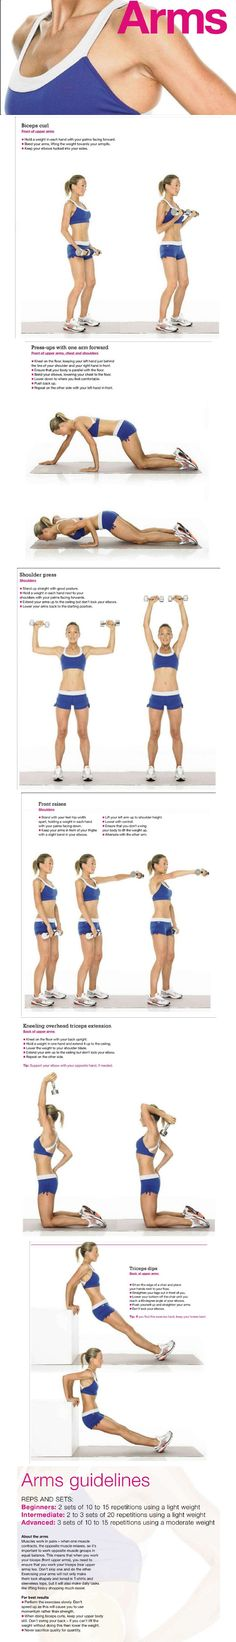 Best arms exercises